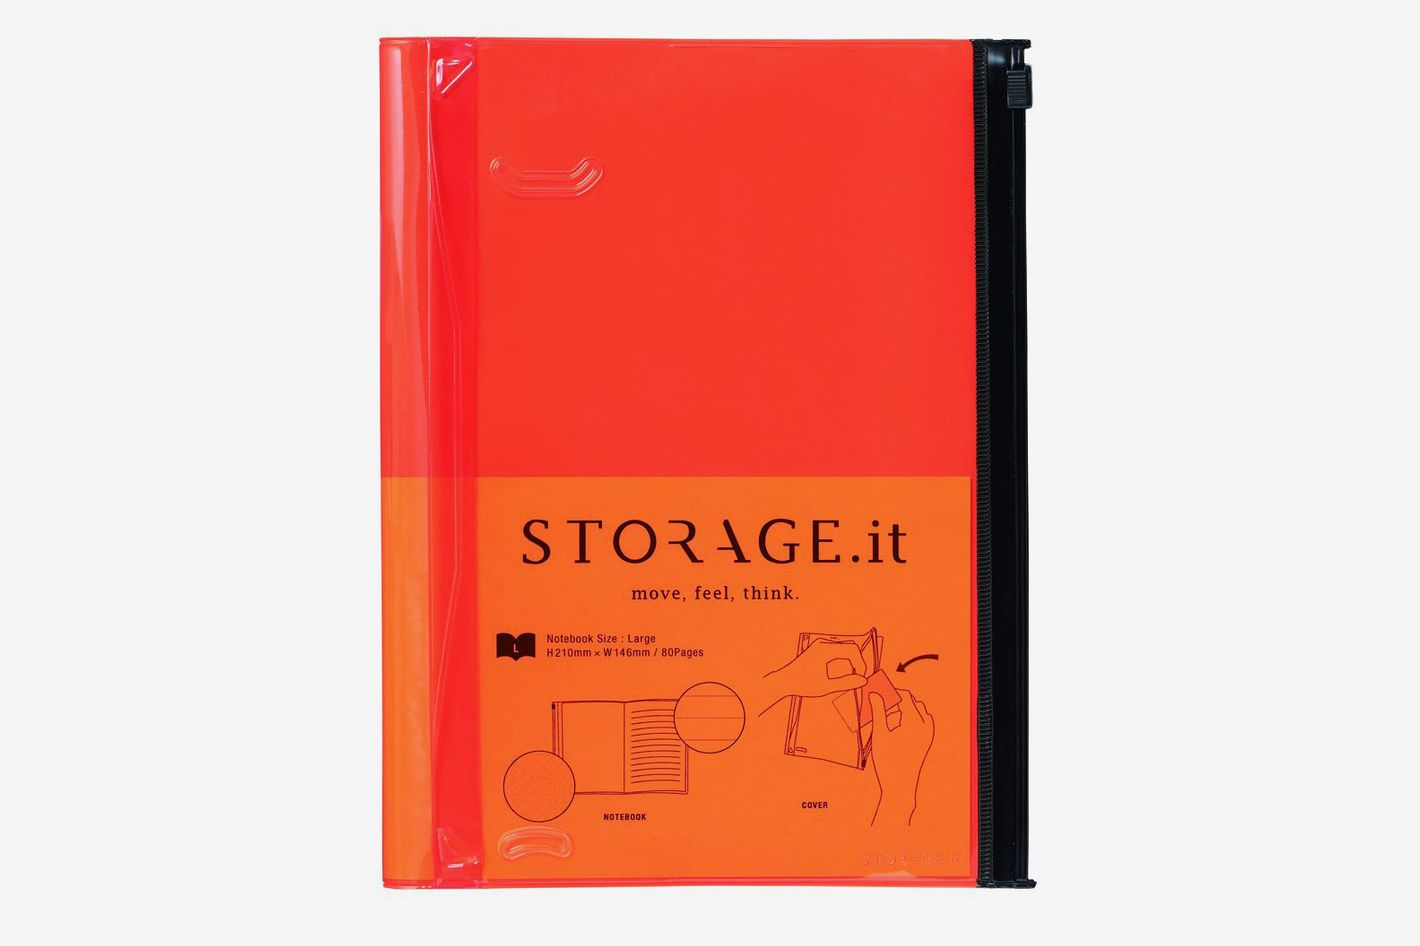 Mark's Storage.it Notebook